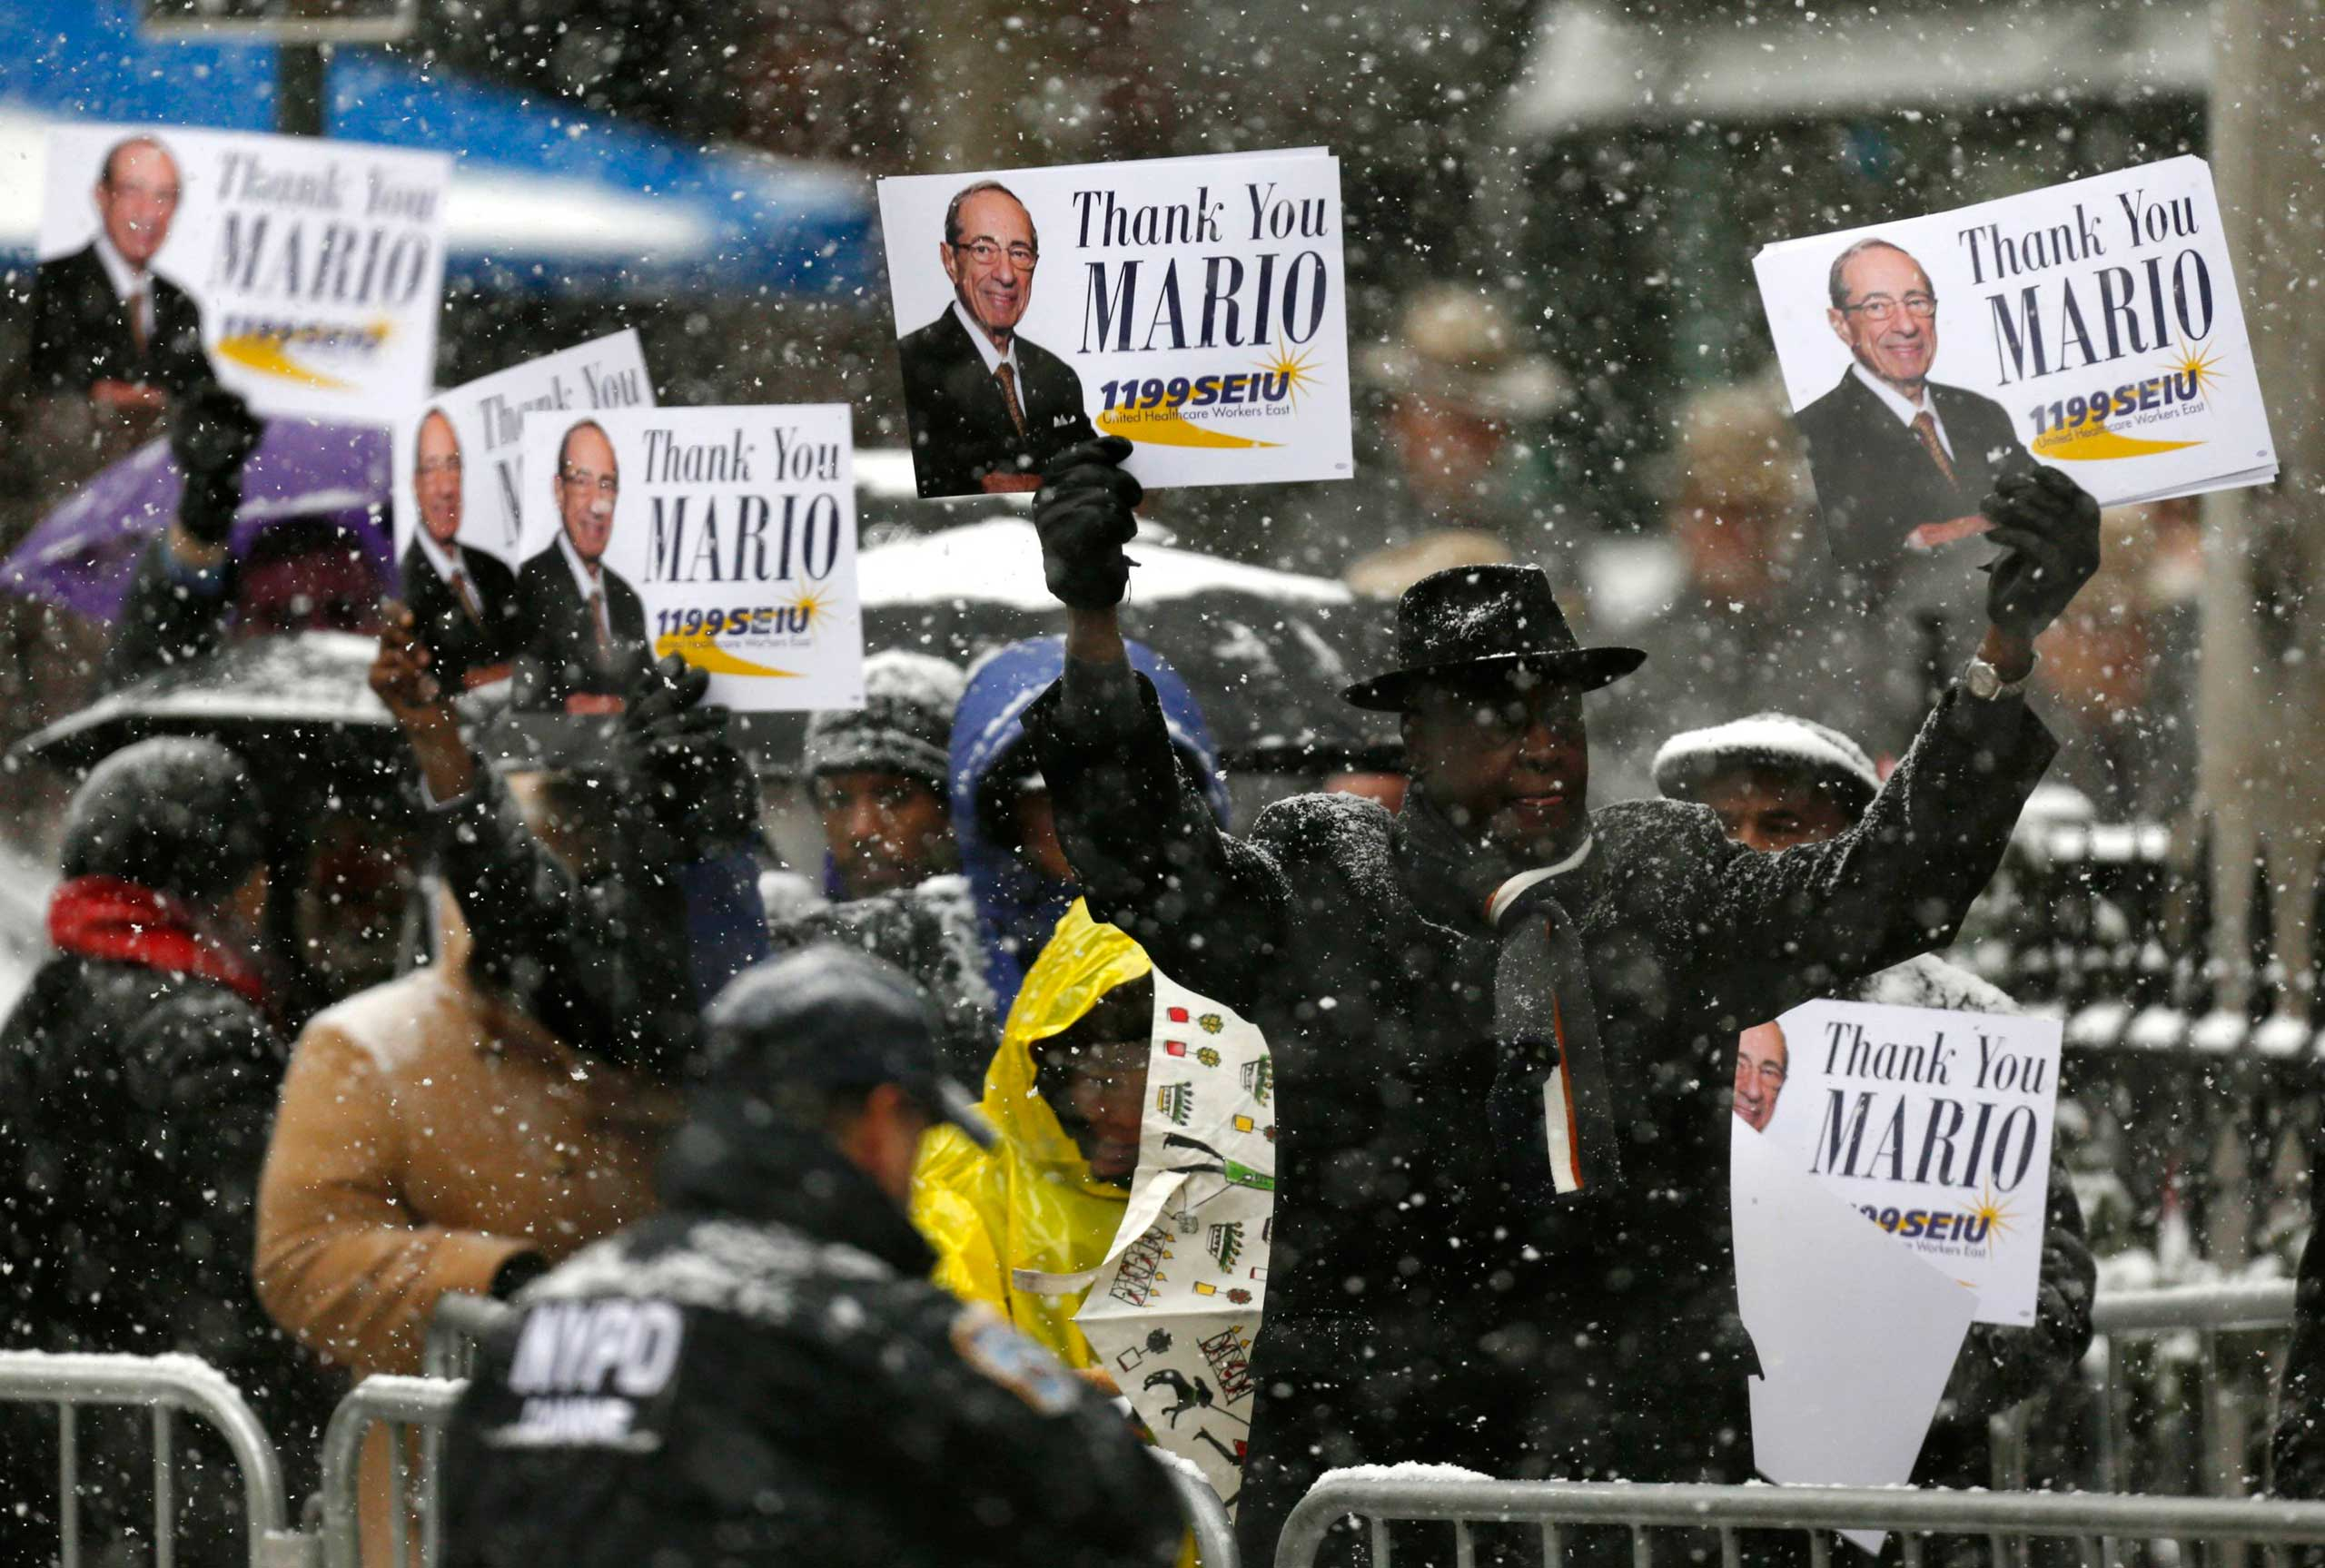 People holds signs outside St. Ignatius Loyola Church,before the funeral service for former New York Governor Mario Cuomo in New York on Jan. 6, 2015.